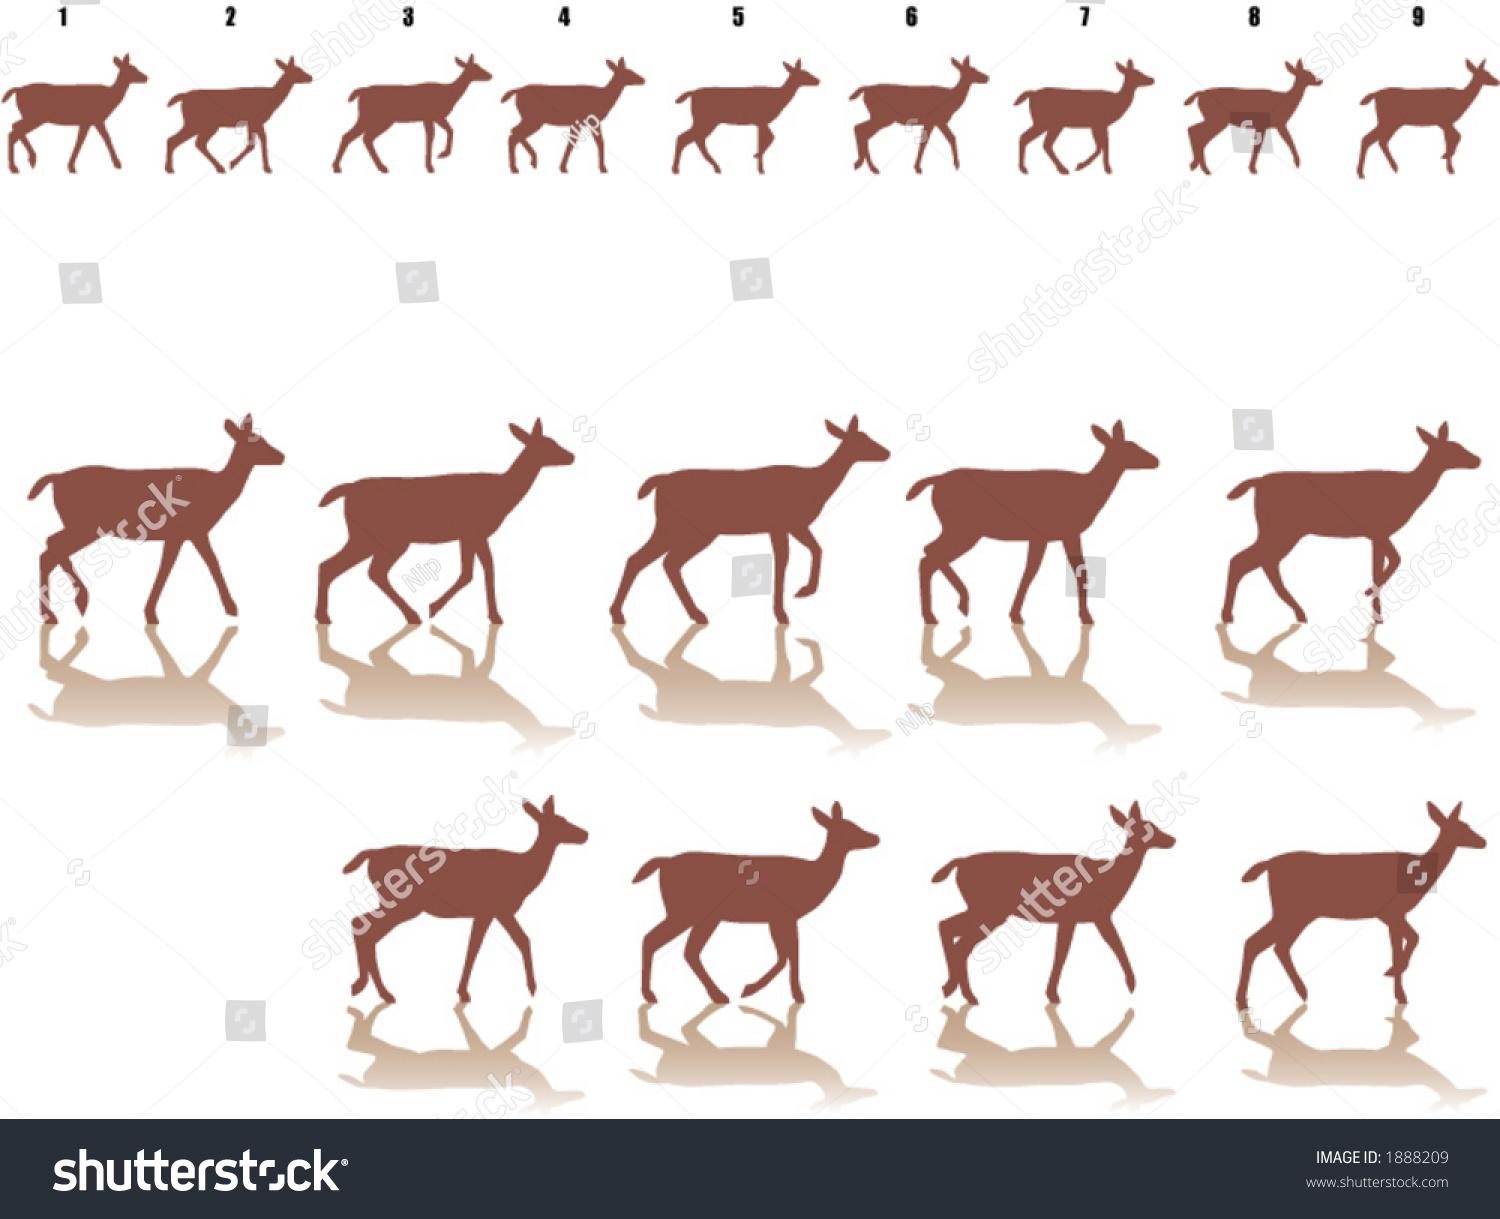 Frame By Frame Walking Deer Stock Photo (Photo, Vector, Illustration ...